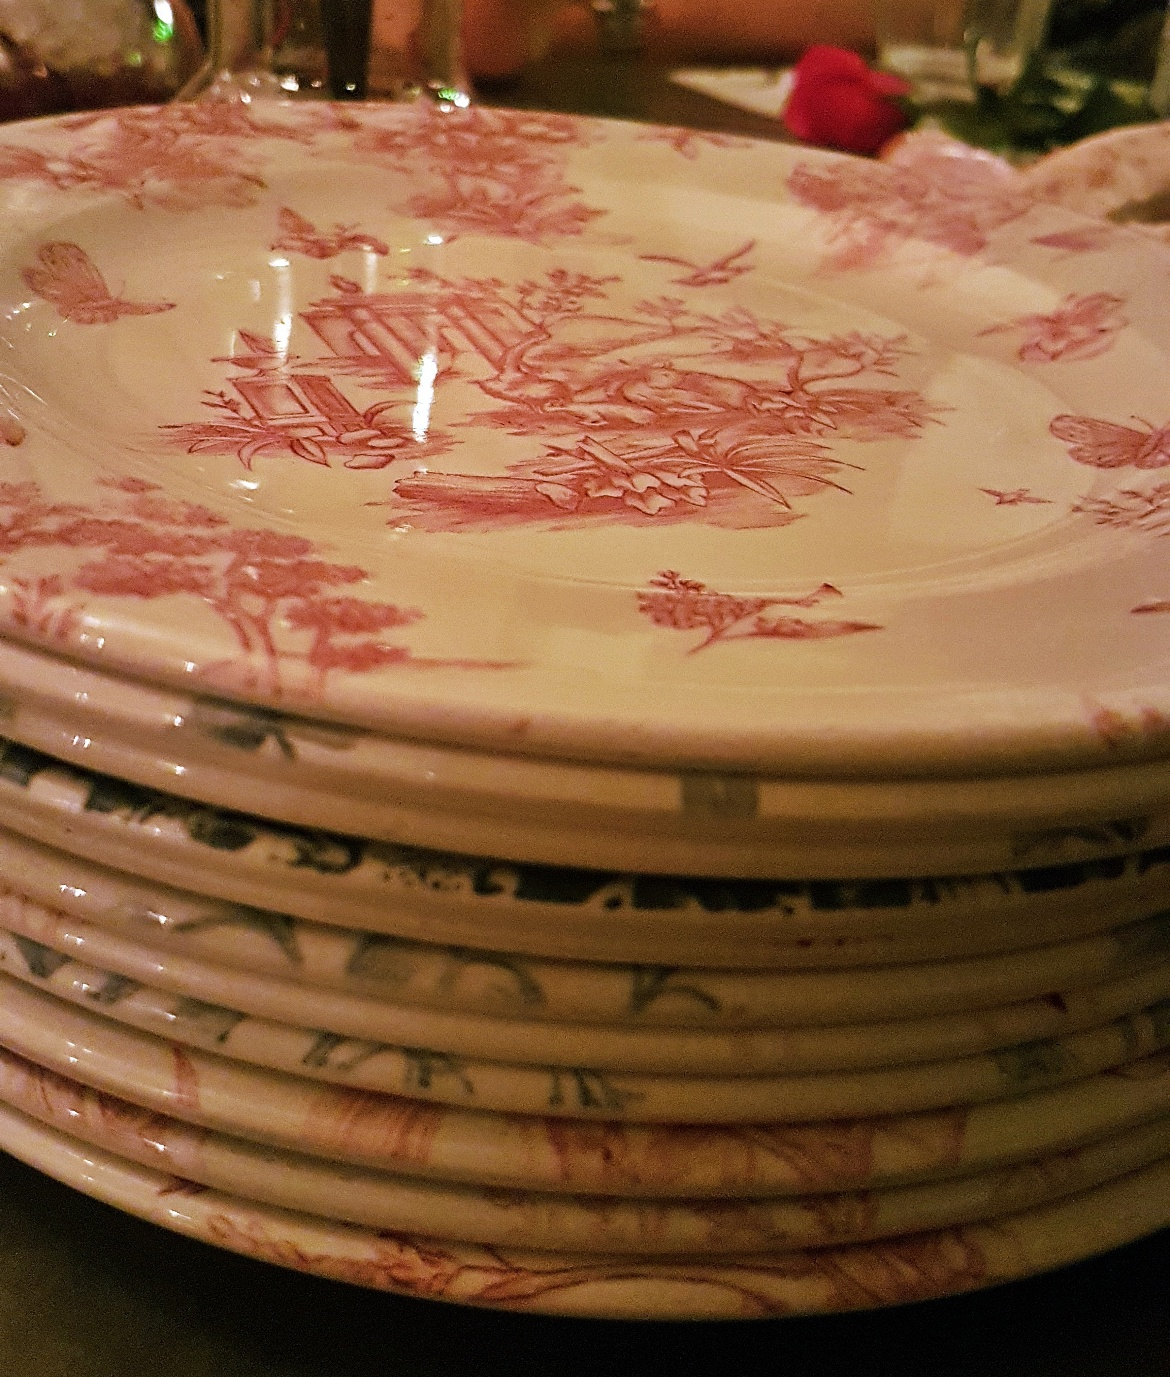 Kitschy plates - Gin Masterclass at the Botanist Leeds, review by BeckyBecky Blogs